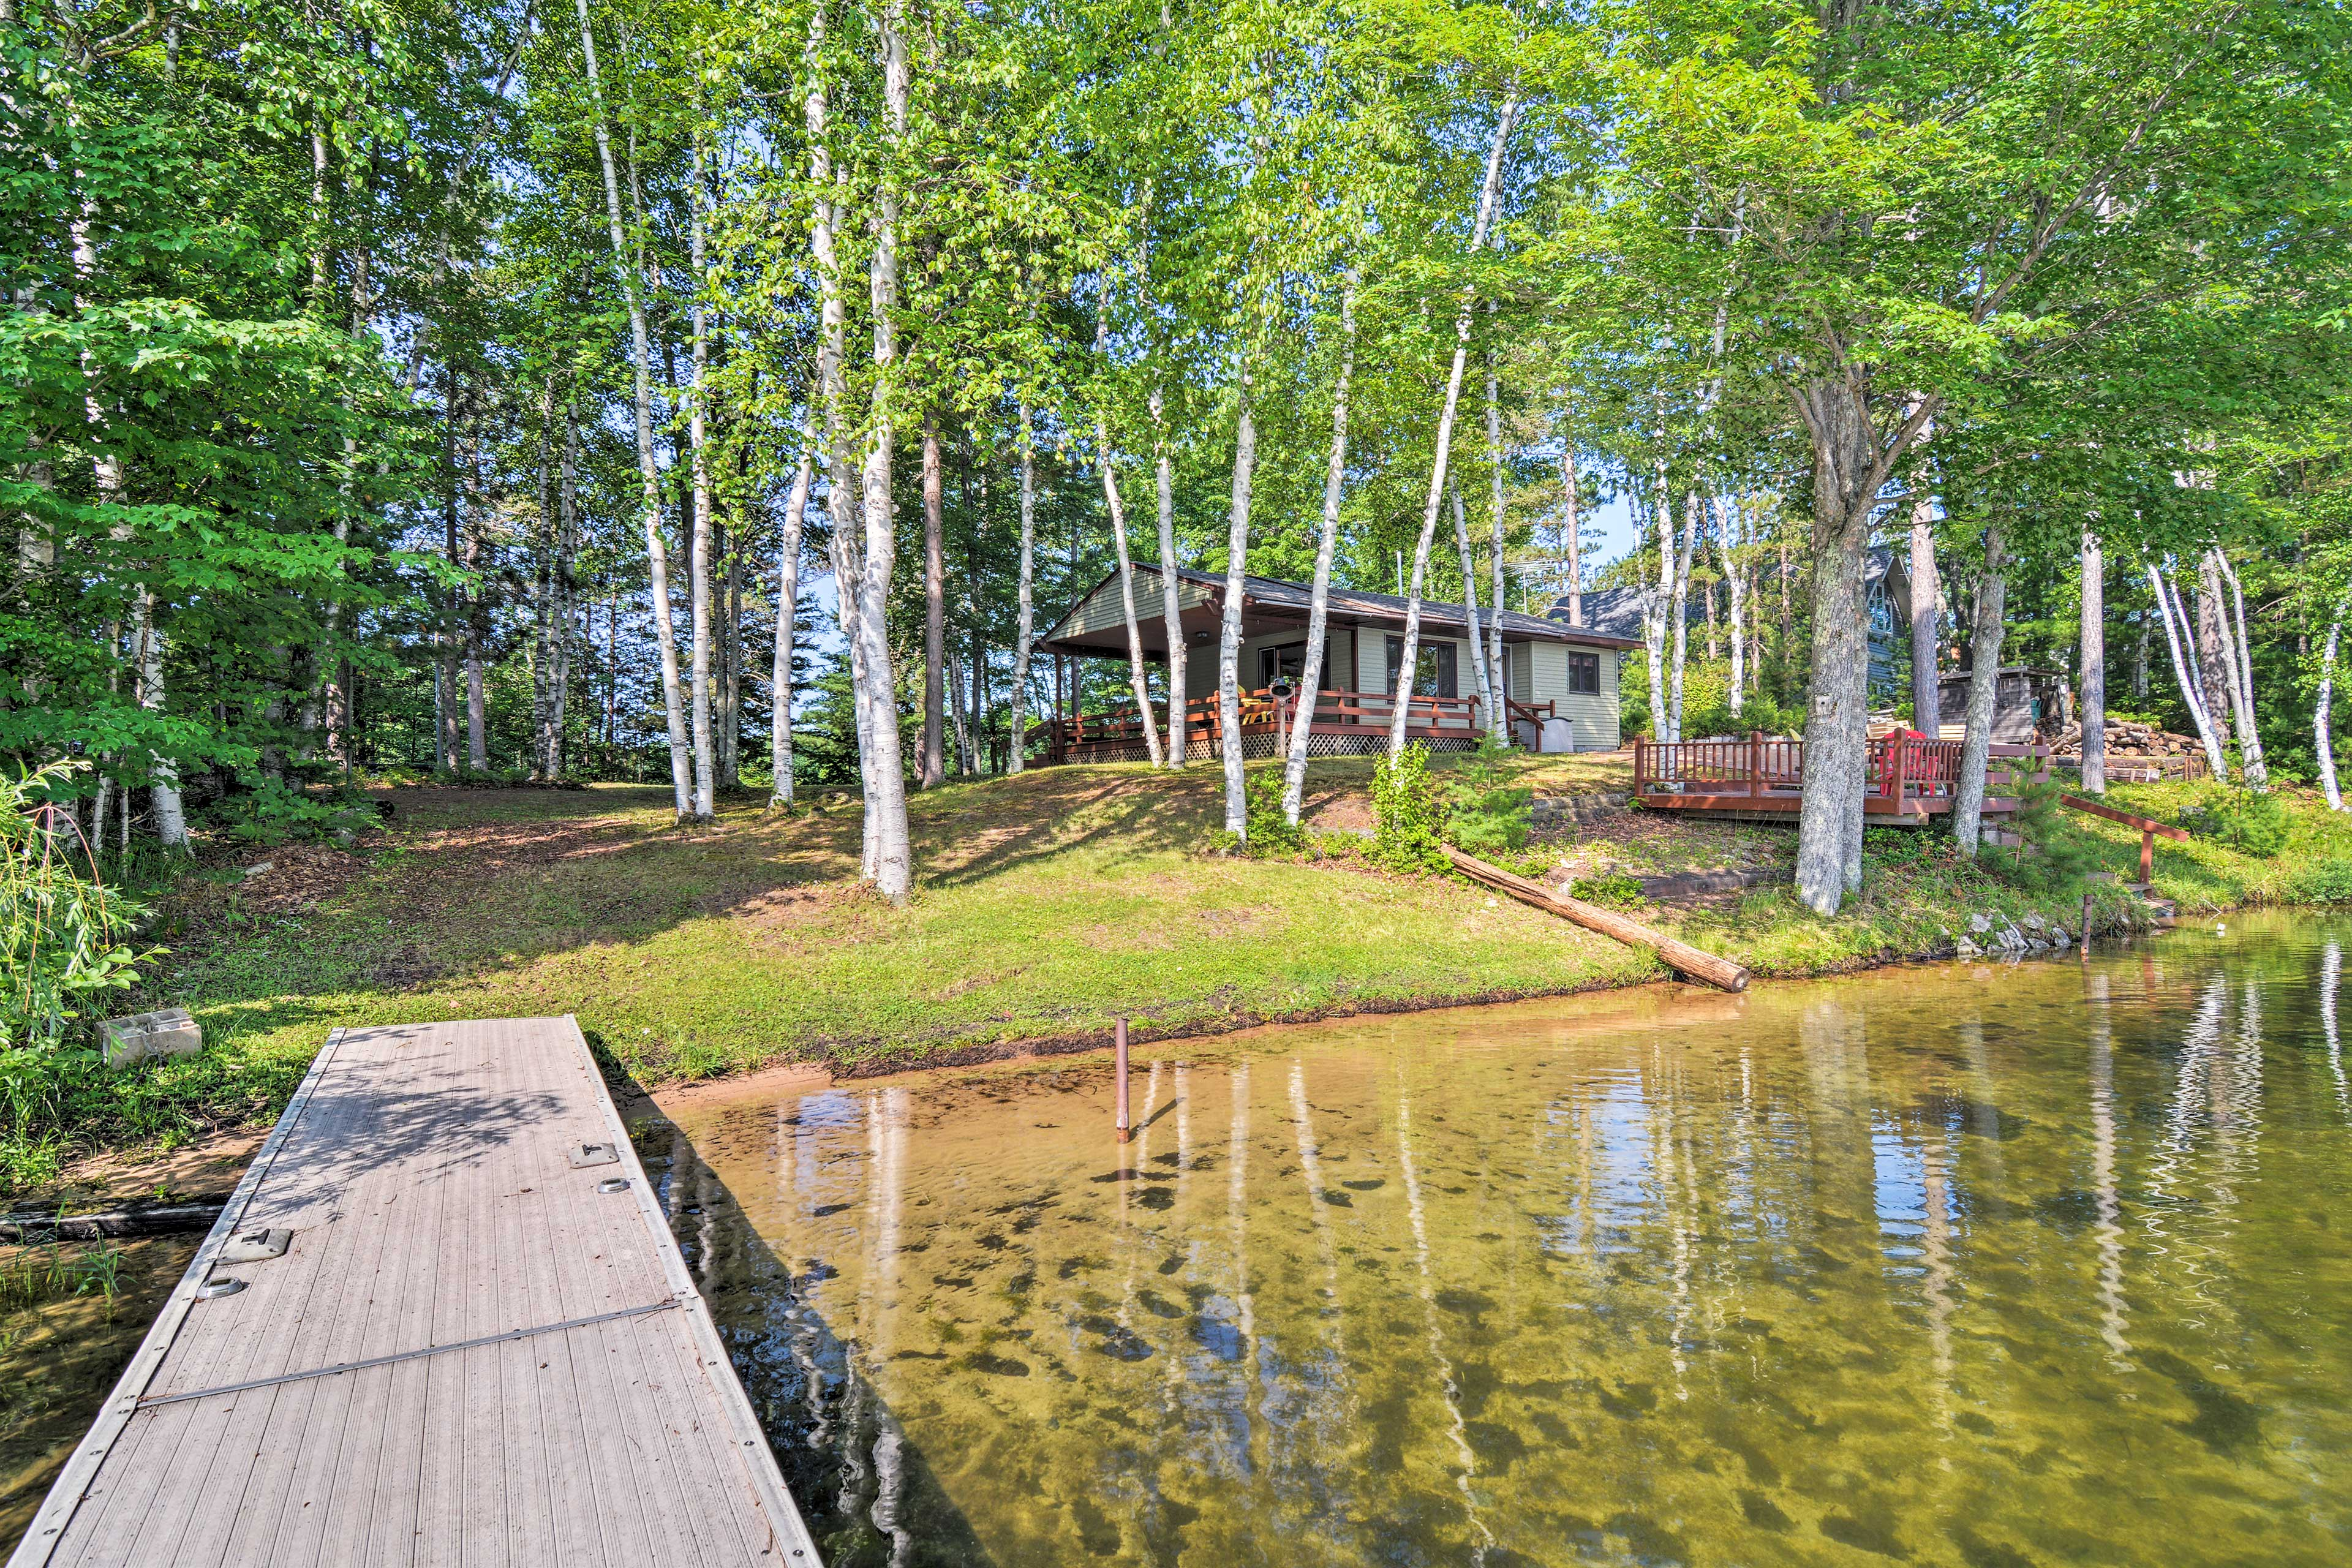 The cabin is nestled in the trees of Hiawatha National Forest.